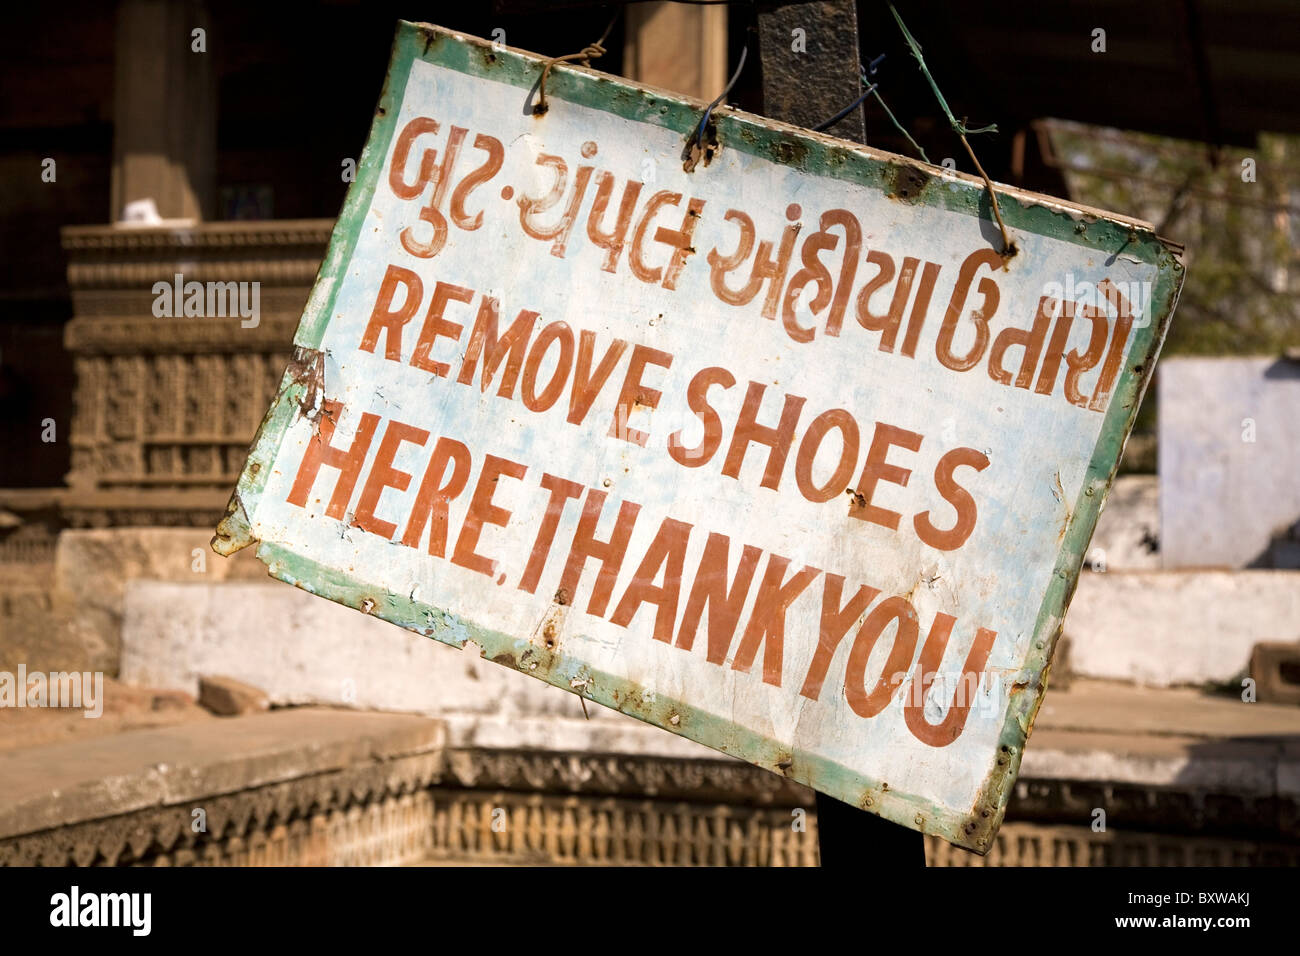 A sign in Gujarati and English tells people to